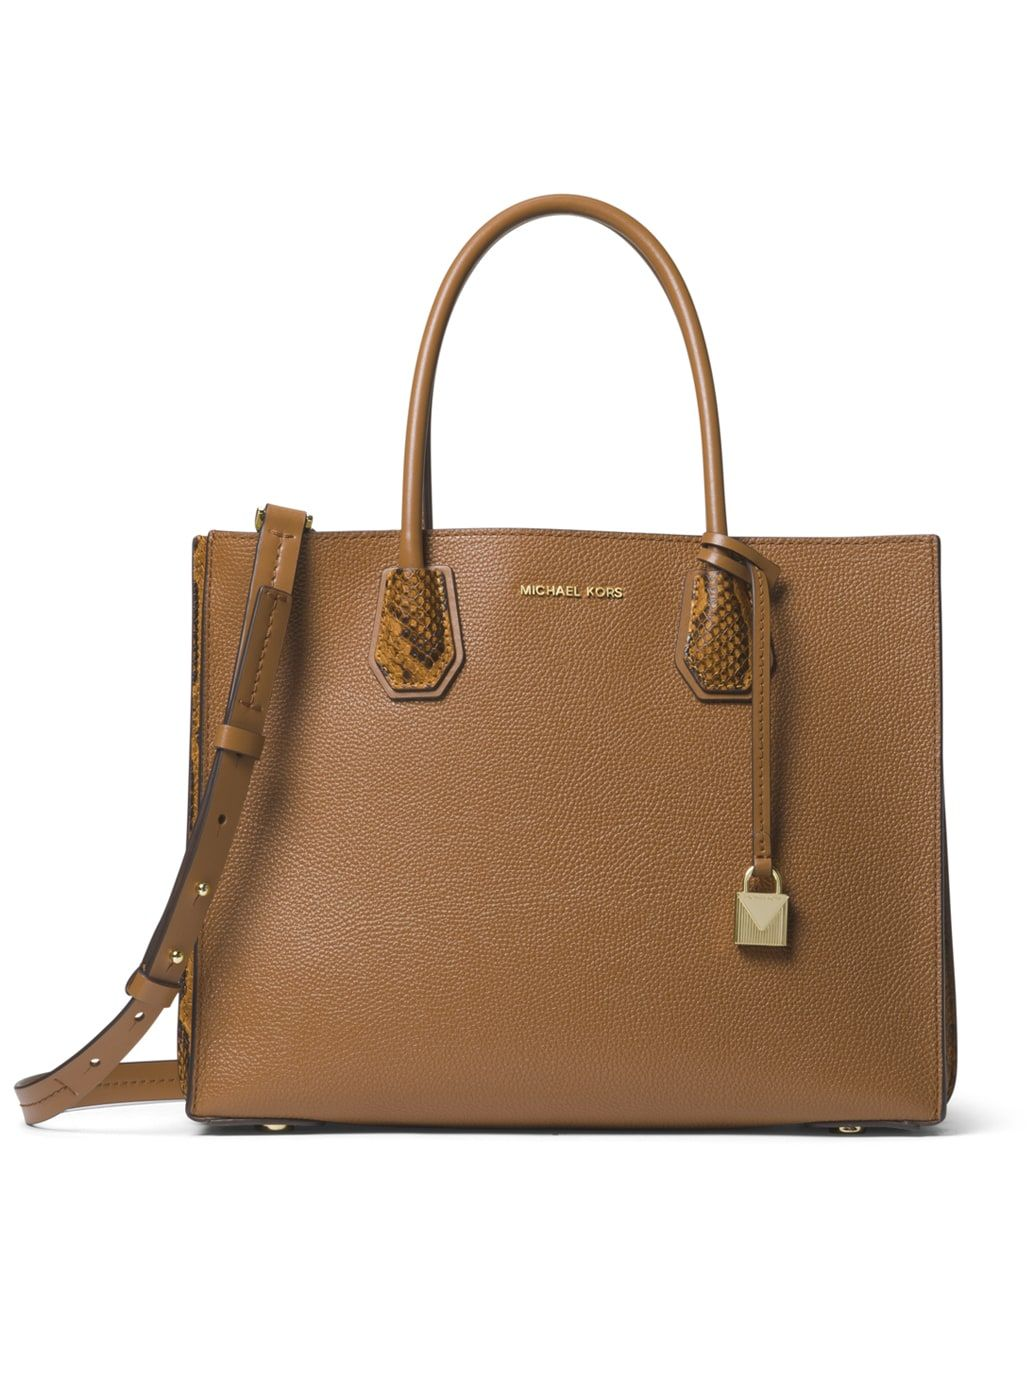 1906549974a8 Michael Kors · LG Mercer Pebbled and Embossed Leather Accordion Tote in Acorn  Pebbled Leather, Purse Wallet,